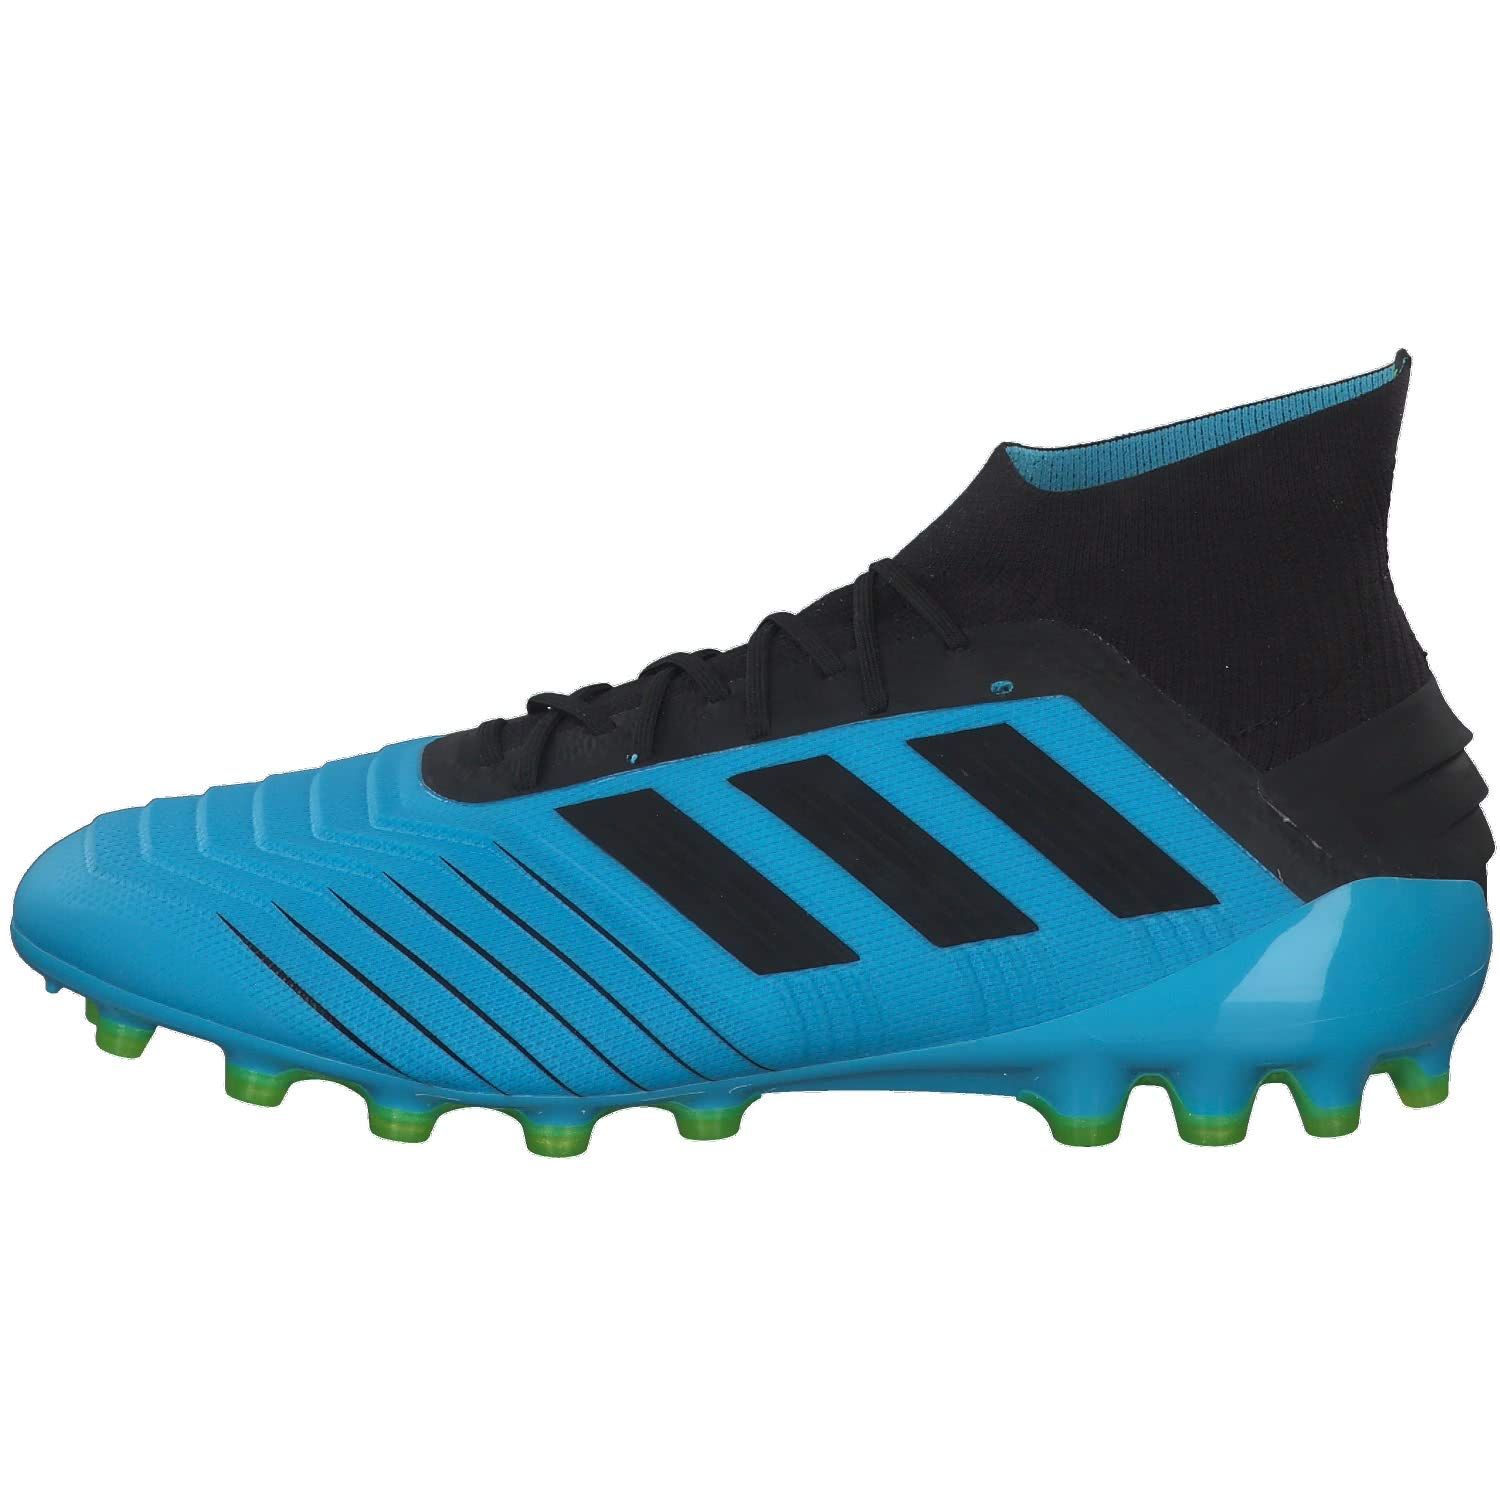 the cheapest how to buy latest design adidas Men's Predator 19.1 Ag Football Boots: Amazon.co.uk ...